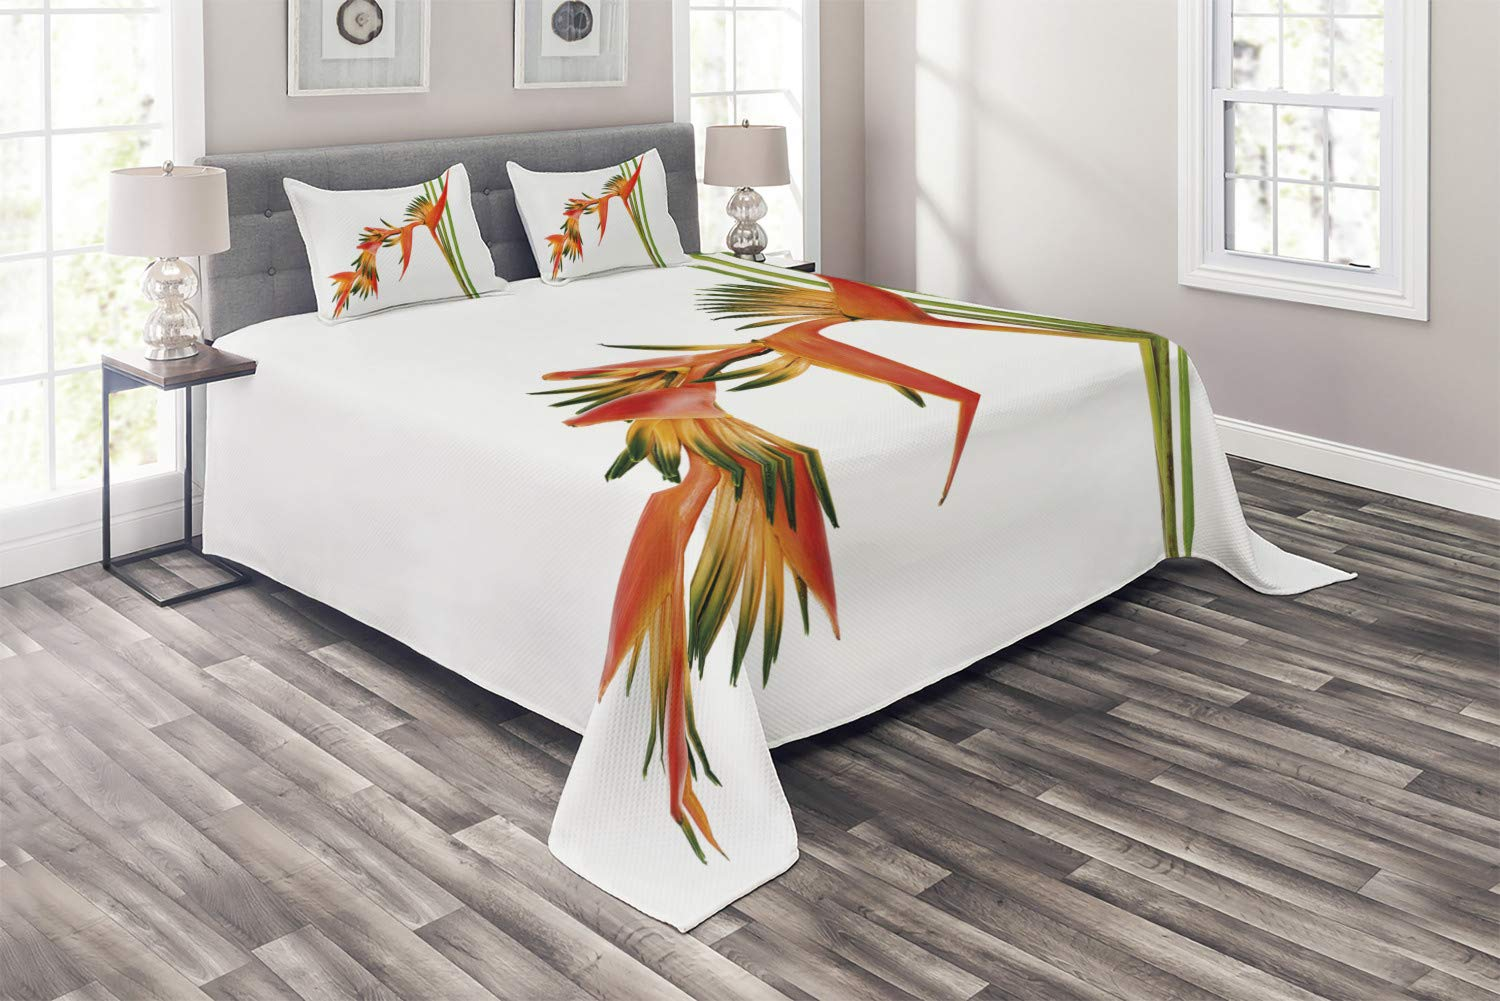 Ambesonne Floral Coverlet, Exotic Tropical Flowers on Branch Colorful Nature Jungle Garden Theme Image Print, 3 Piece Decorative Quilted Bedspread Set with 2 Pillow Shams, Queen Size, Orange Green